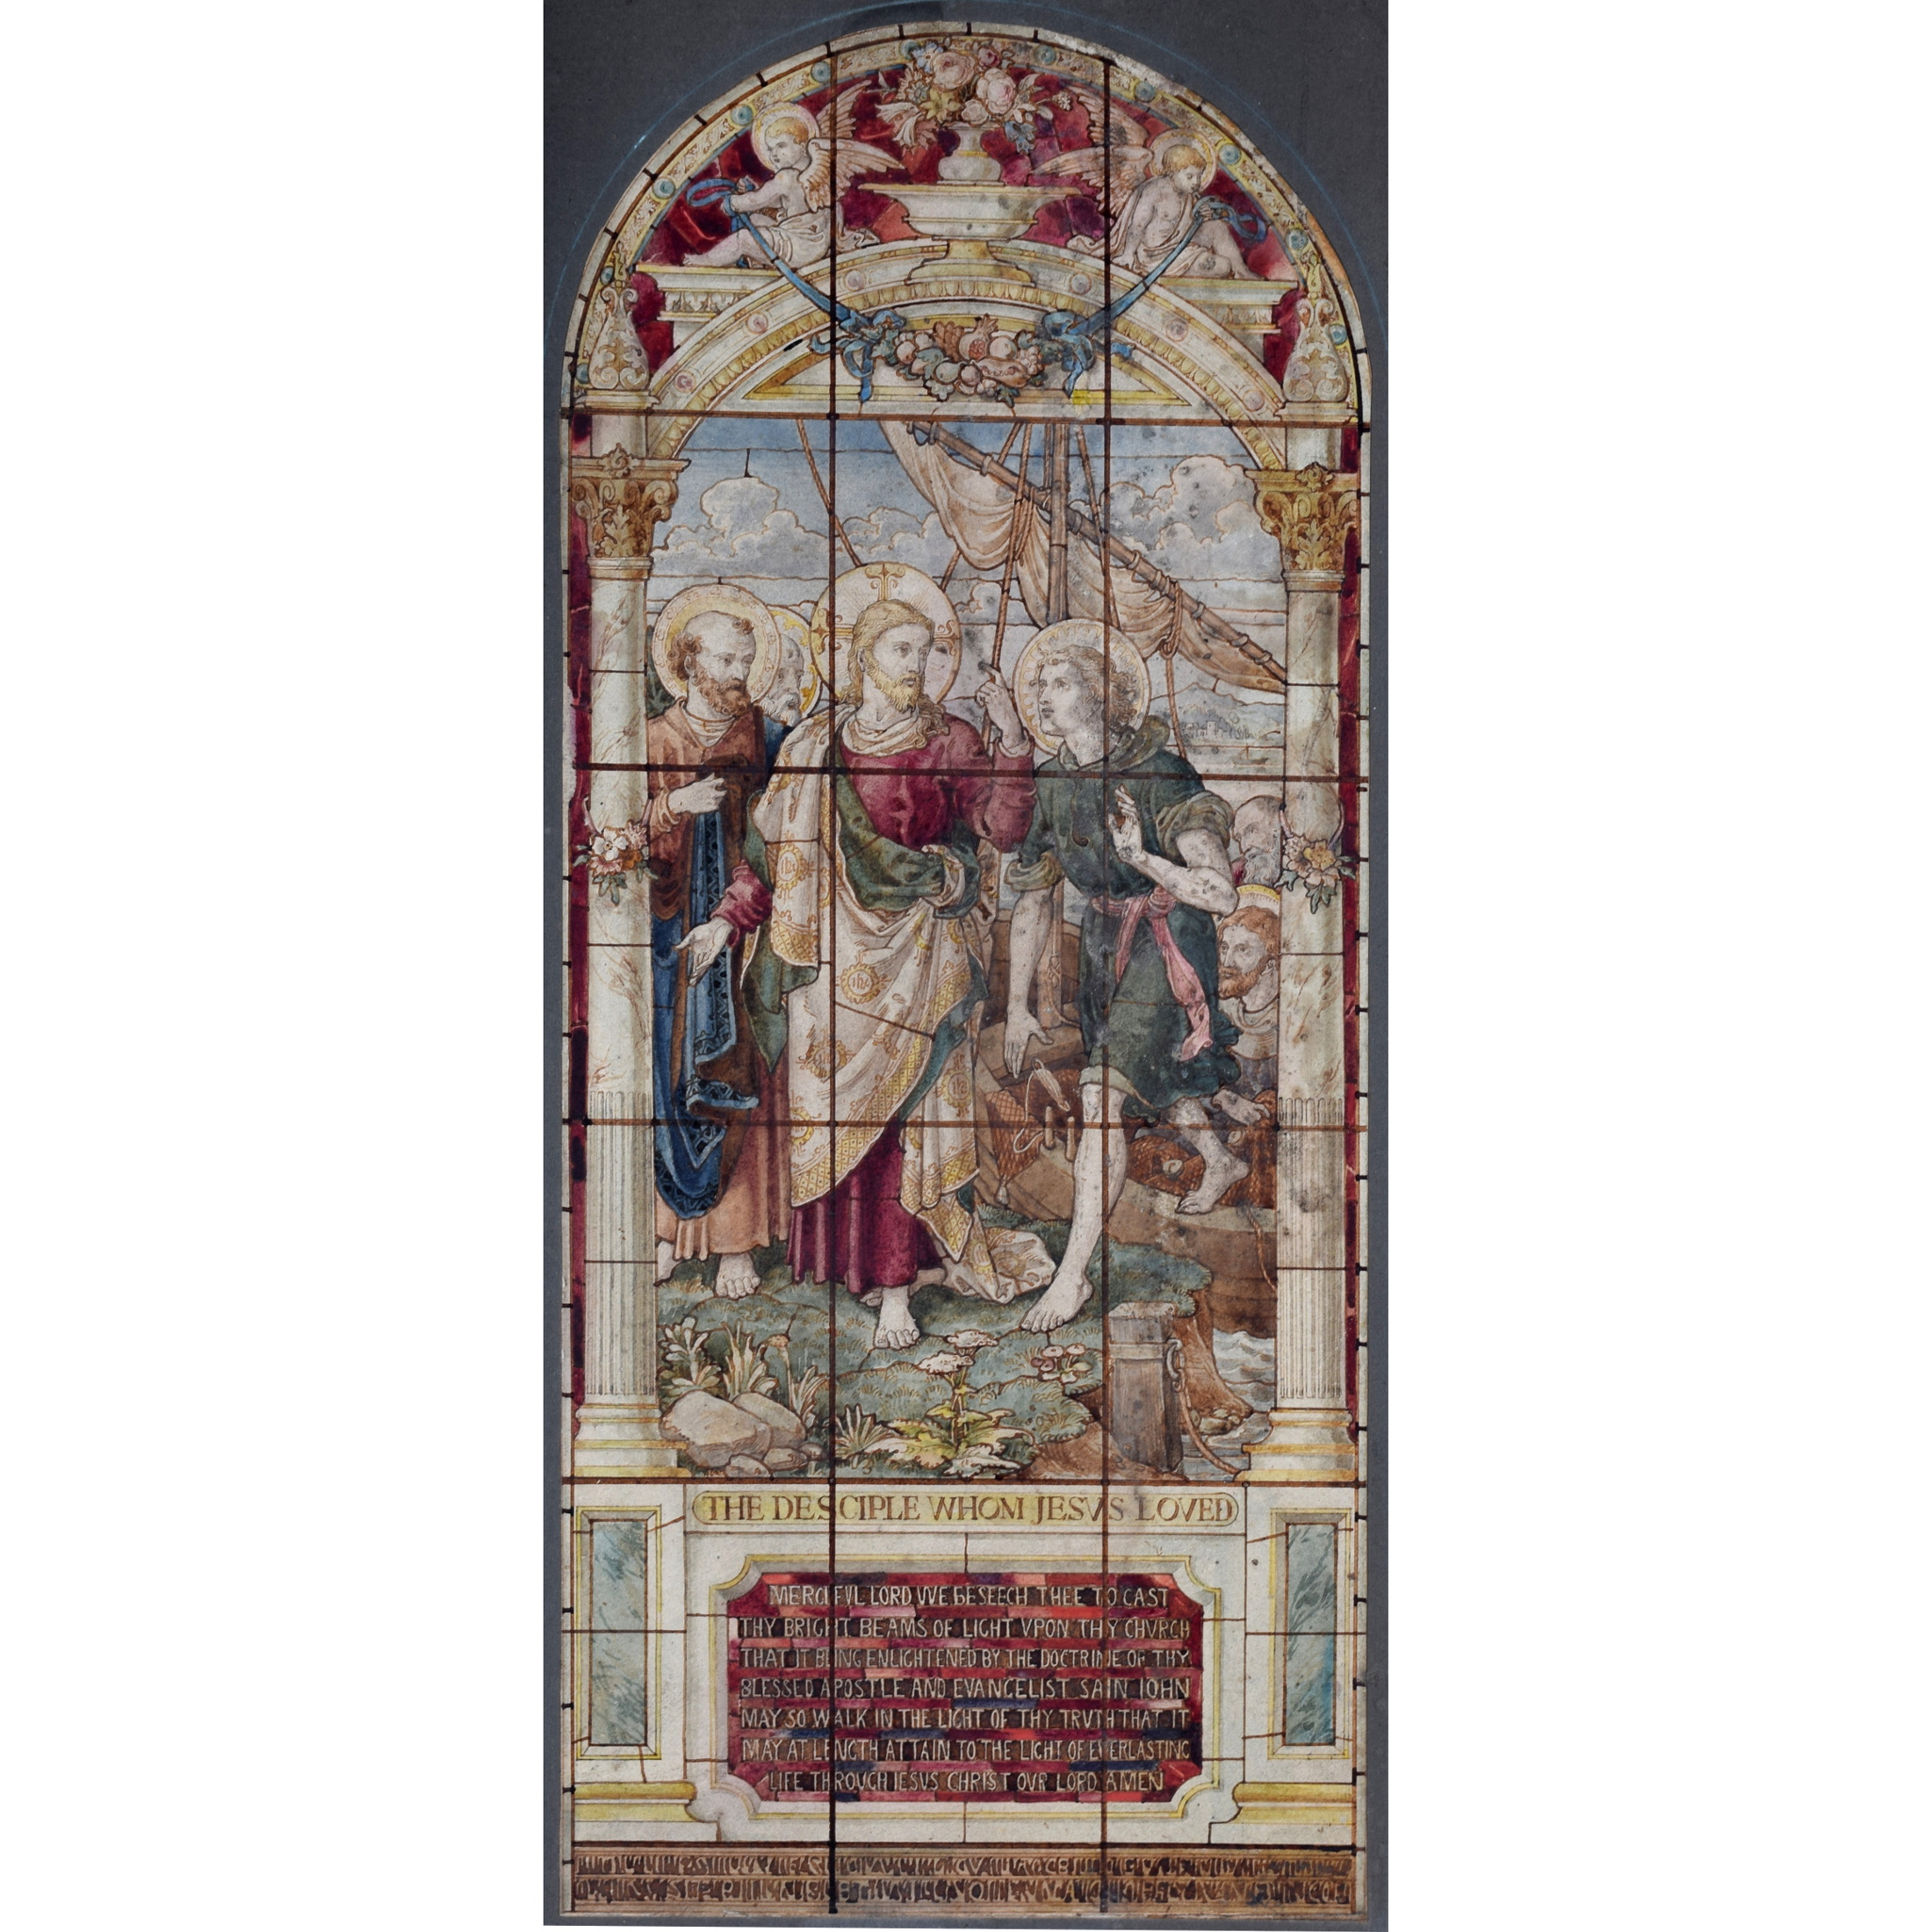 Stained Glass Window Design The disciple whom jesus loved sq